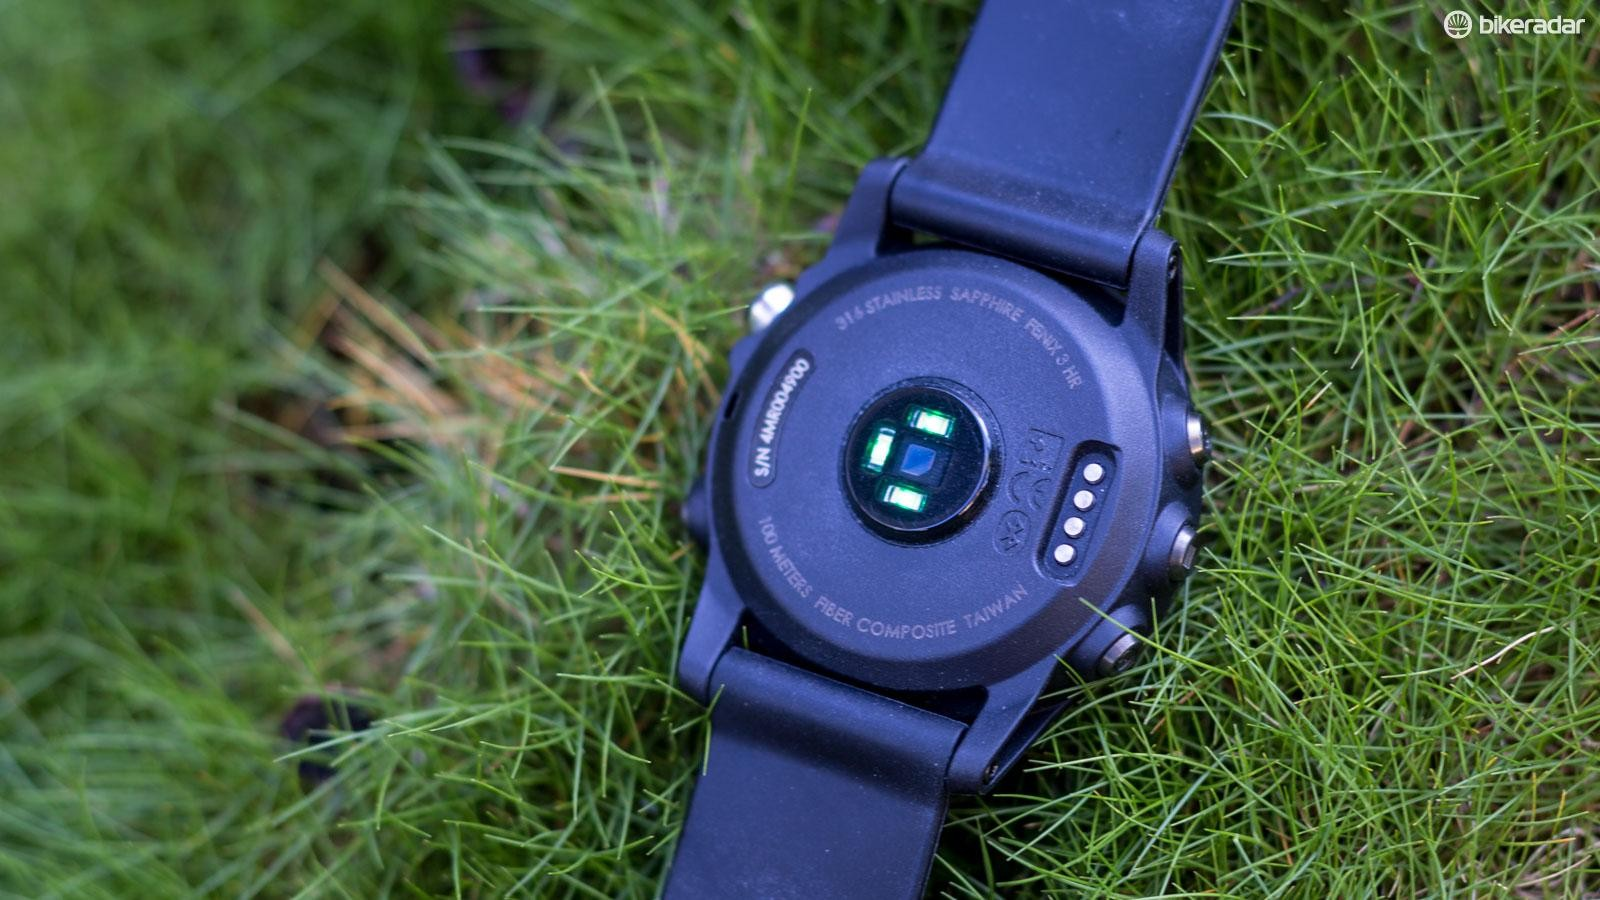 Some of the latest crop of watches have built-in optical heart rate